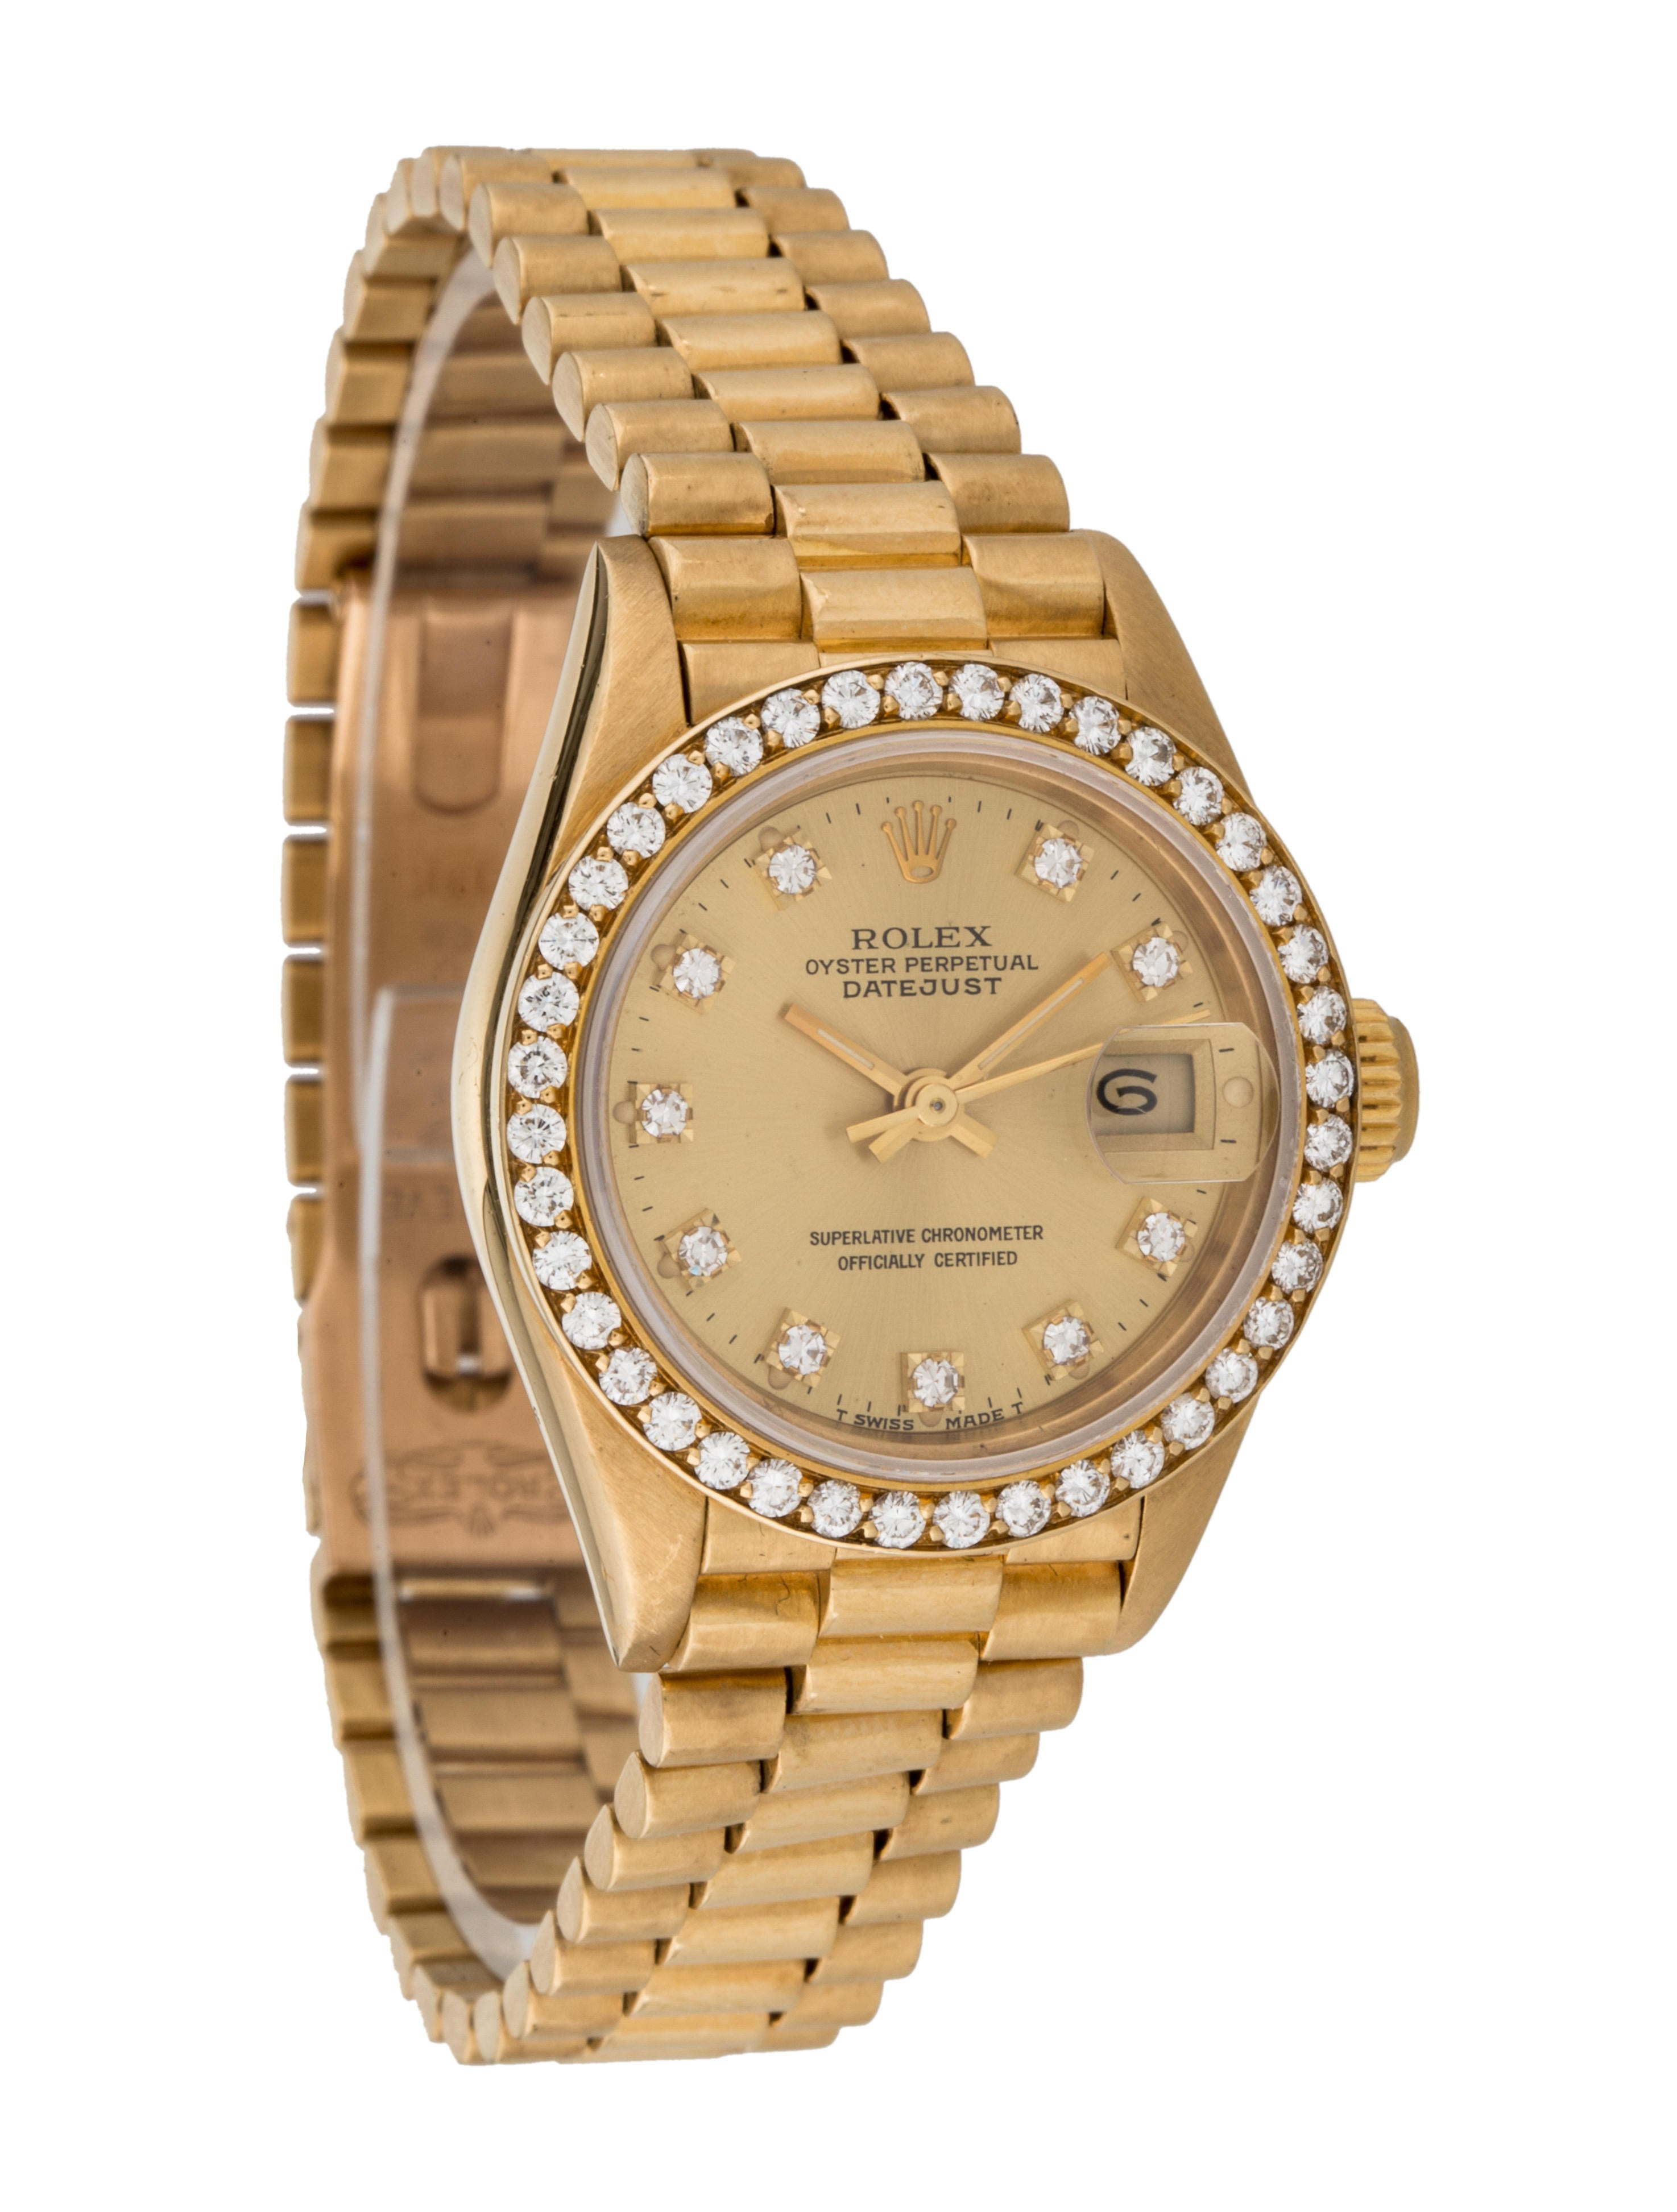 Rolex diamond oyster perpetual datejust watch bracelet rlx21097 the realreal for Oyster watches